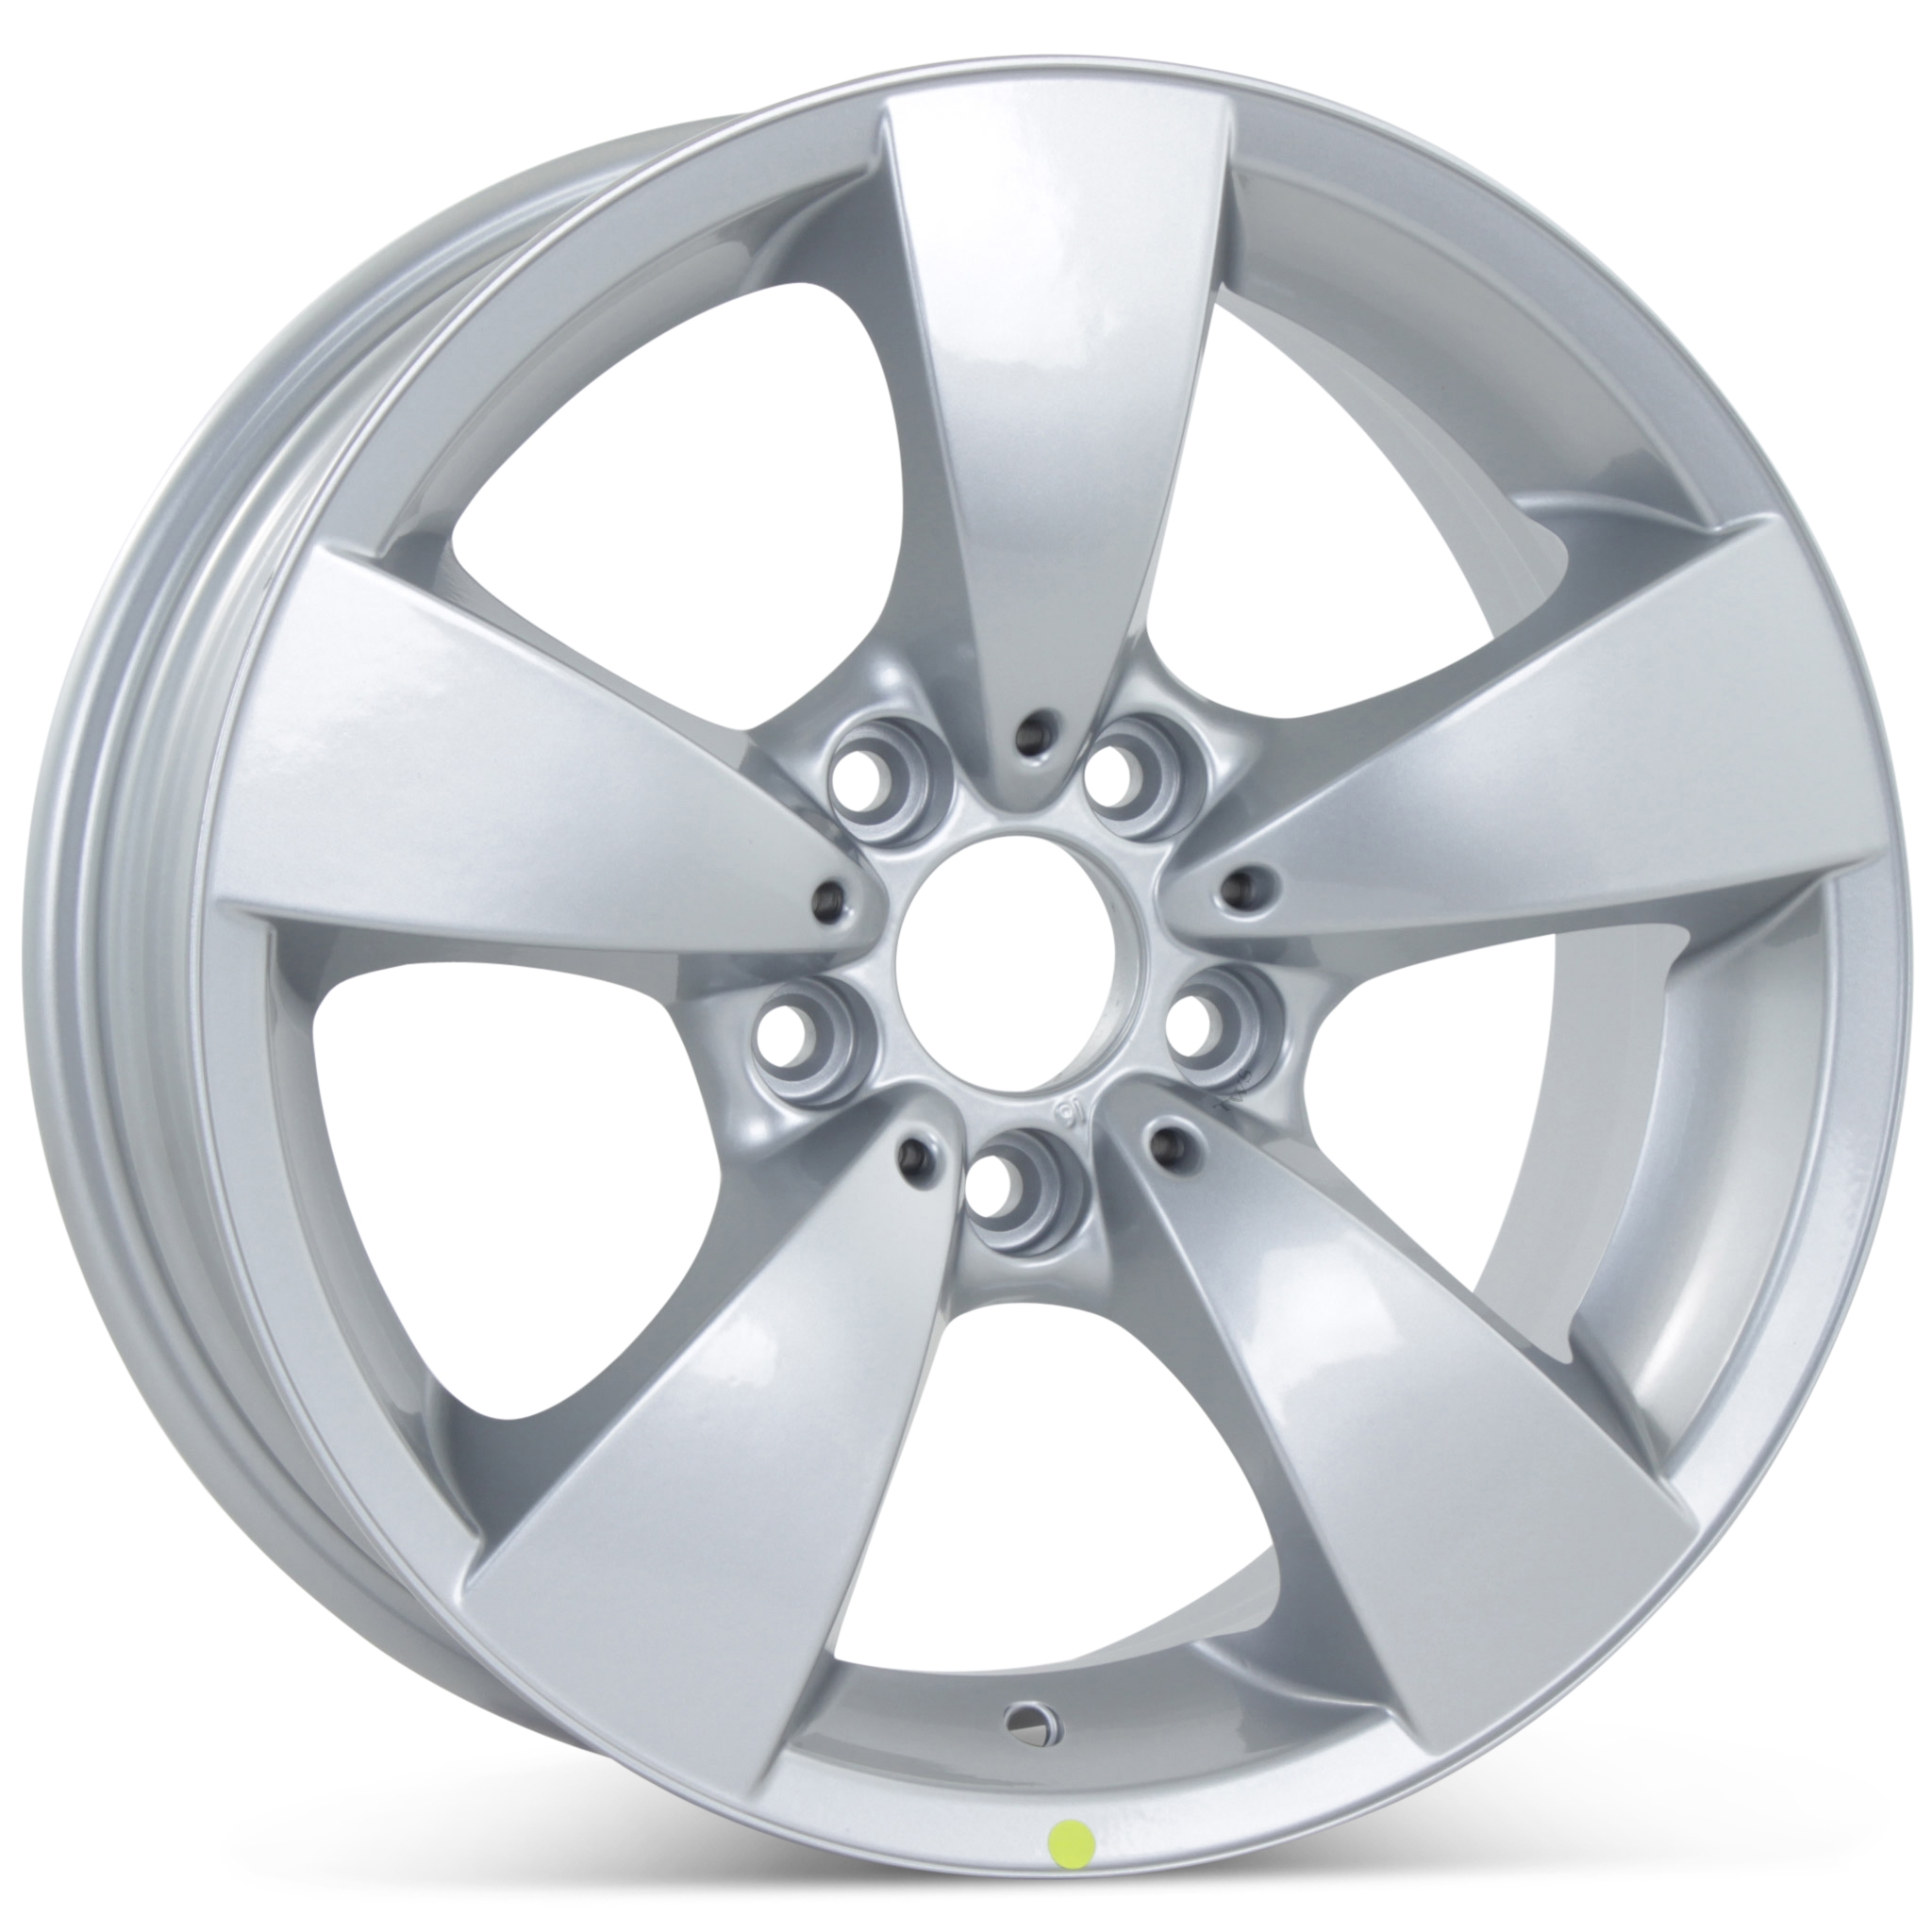 """17/"""" Replacement Wheel for BMW 5-Series 528i 535i 550i 2004-2010 Alloy Rim 59471"""